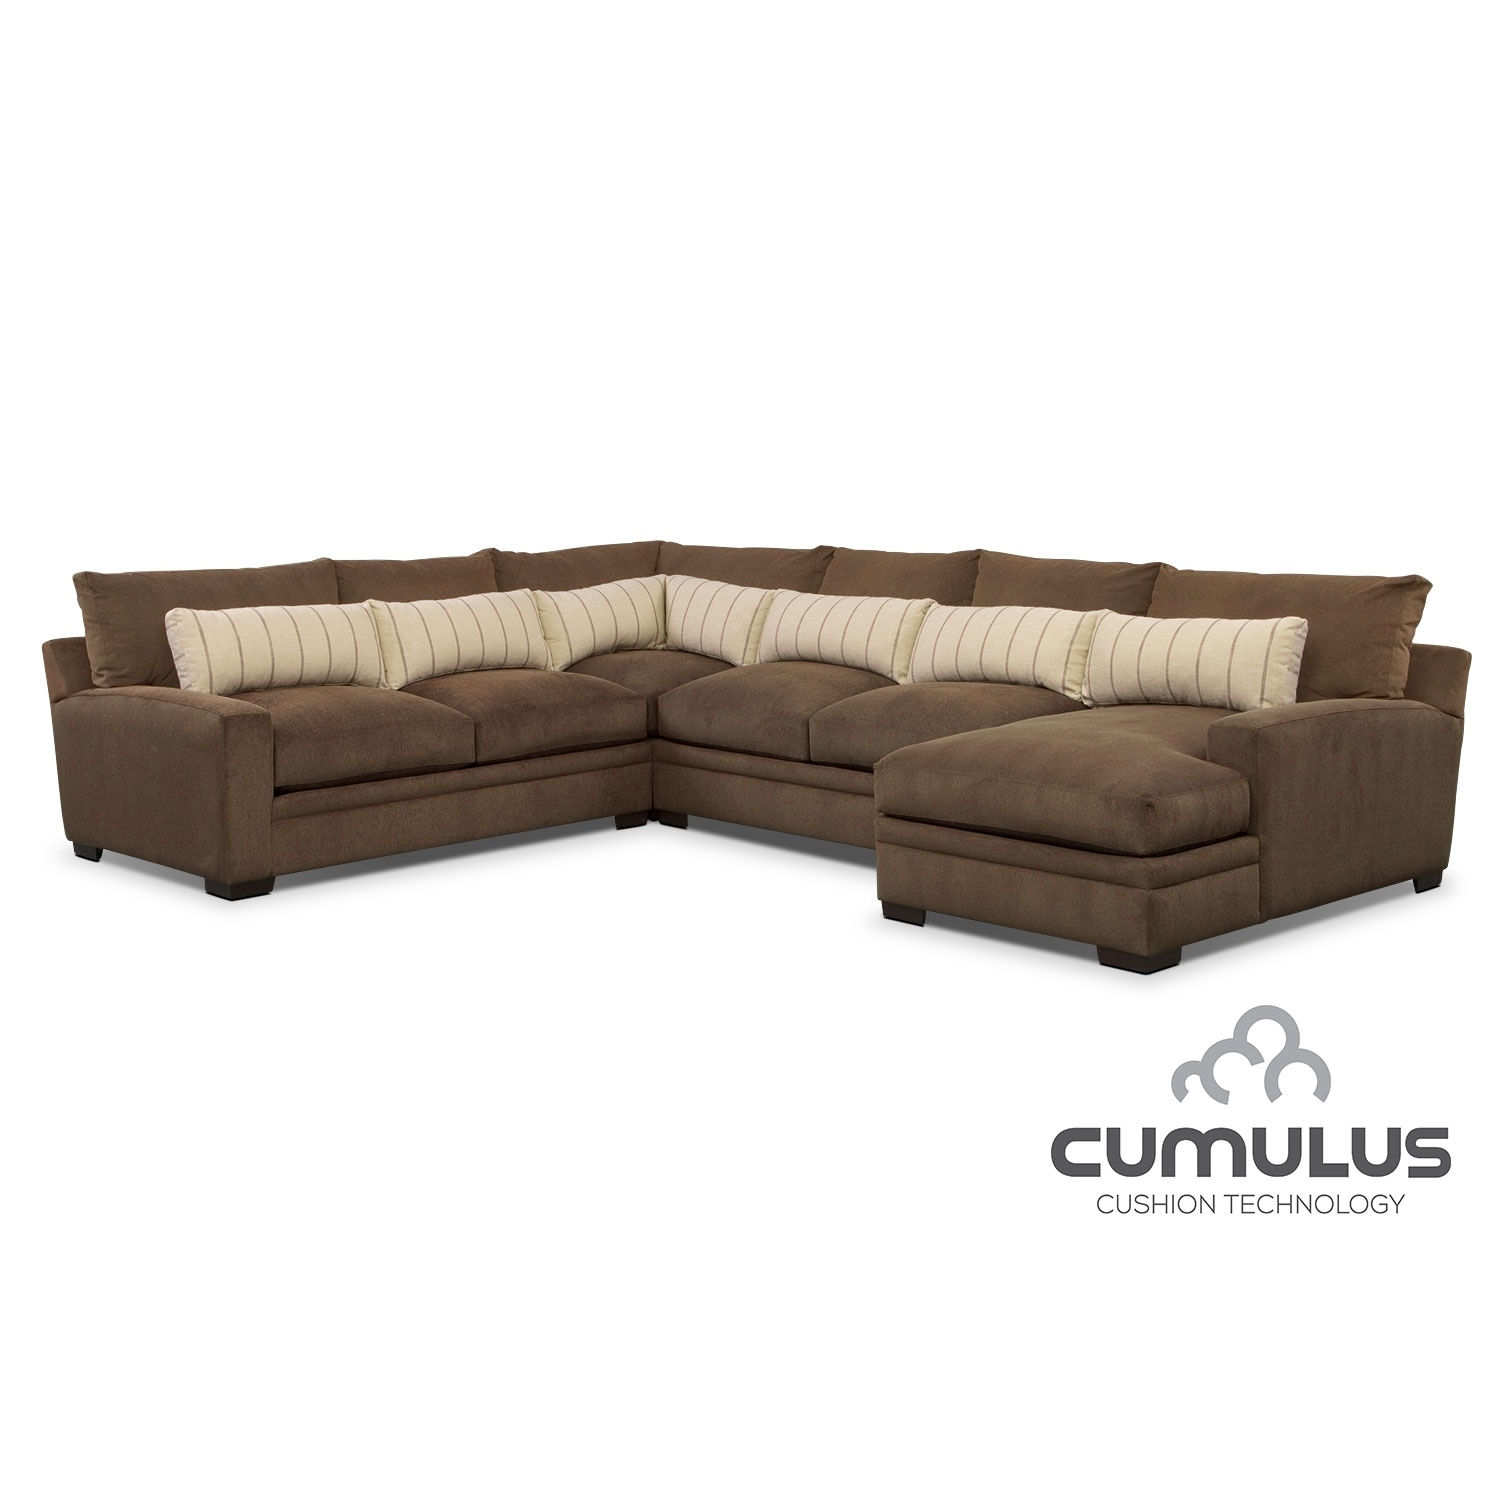 Ventura 4 Piece Sectional with Right Facing Chaise Brown